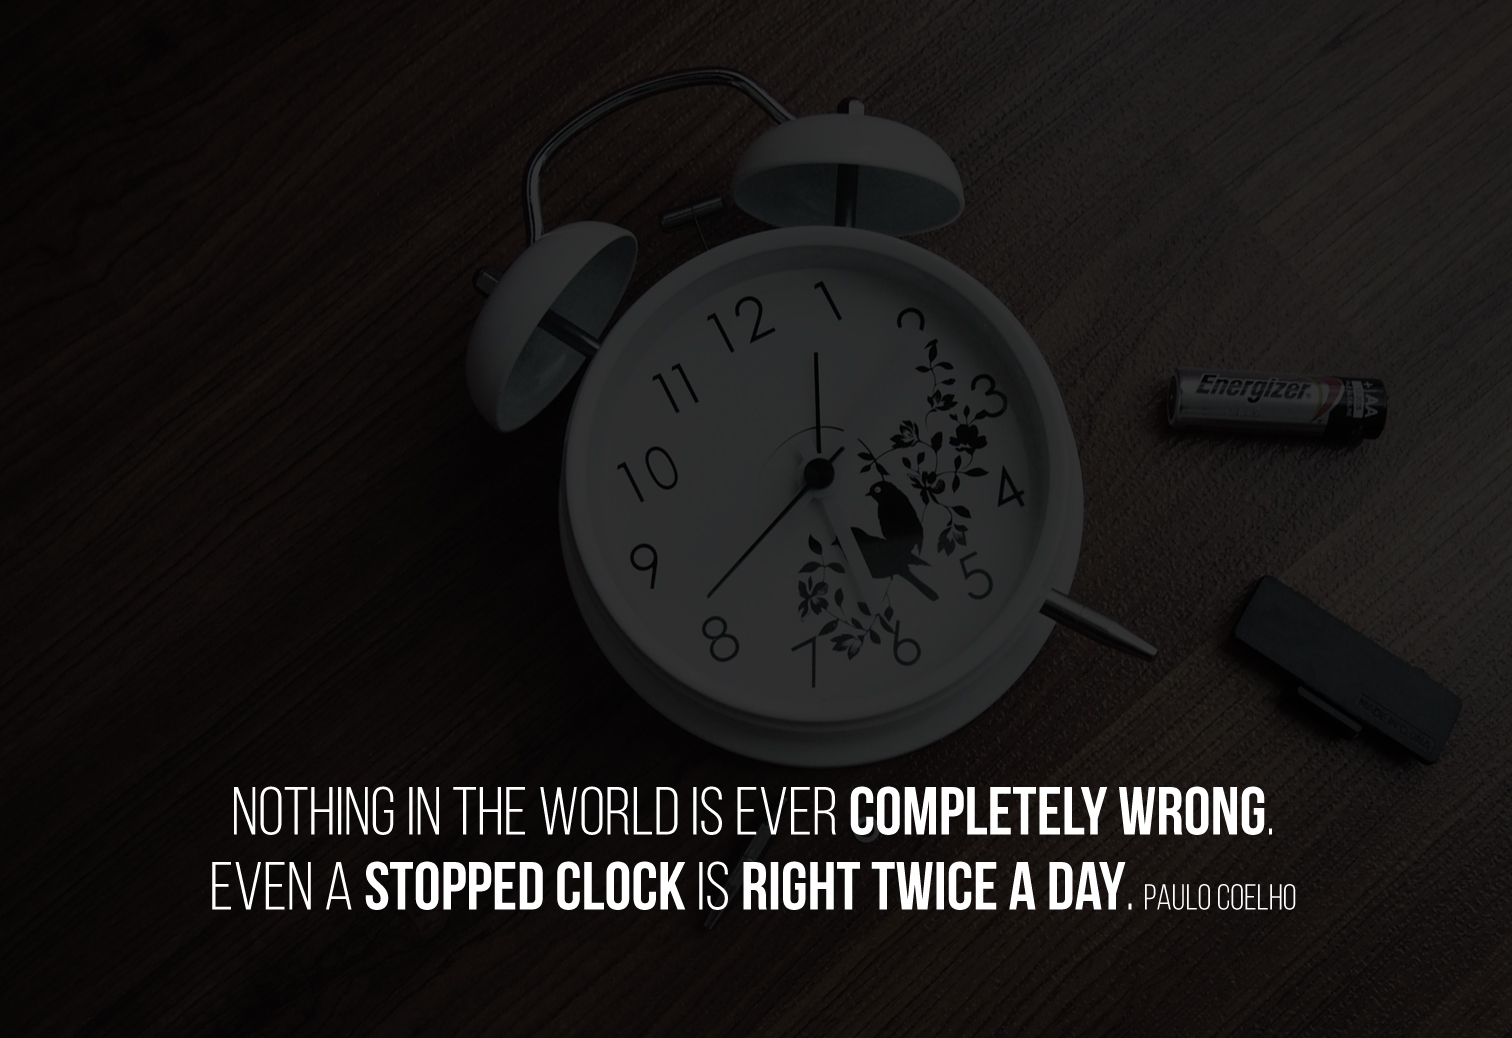 Nothing in the world is ever completely wrong. Even a stopped clock is right twice a day. Paulo Coelho